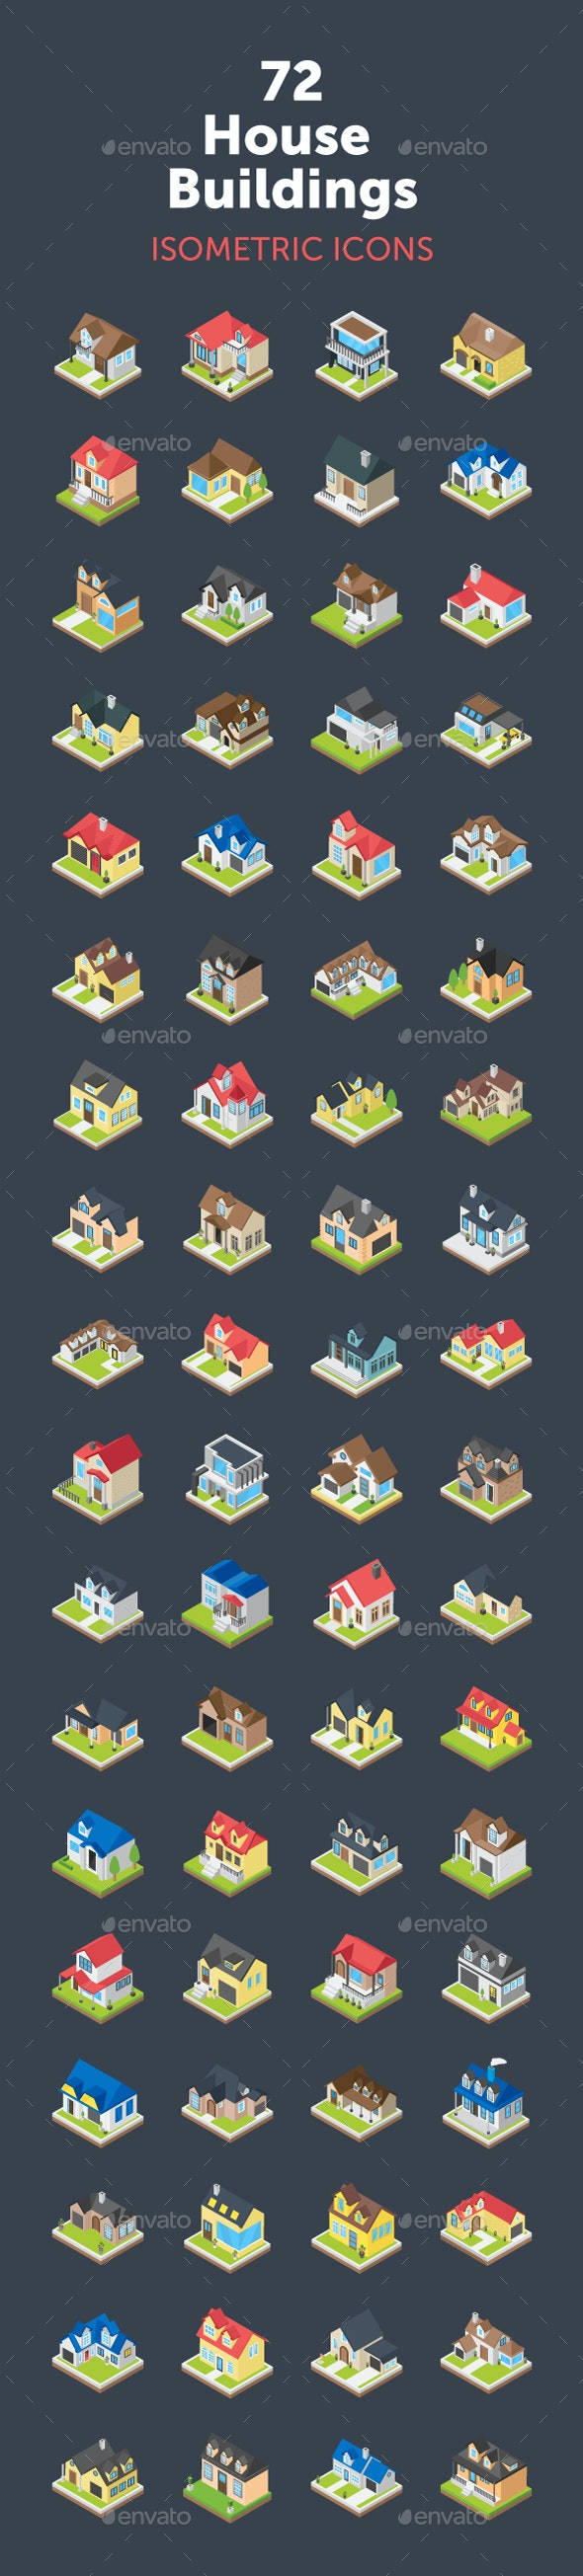 72 House Buildings Isometric Icons - Icons